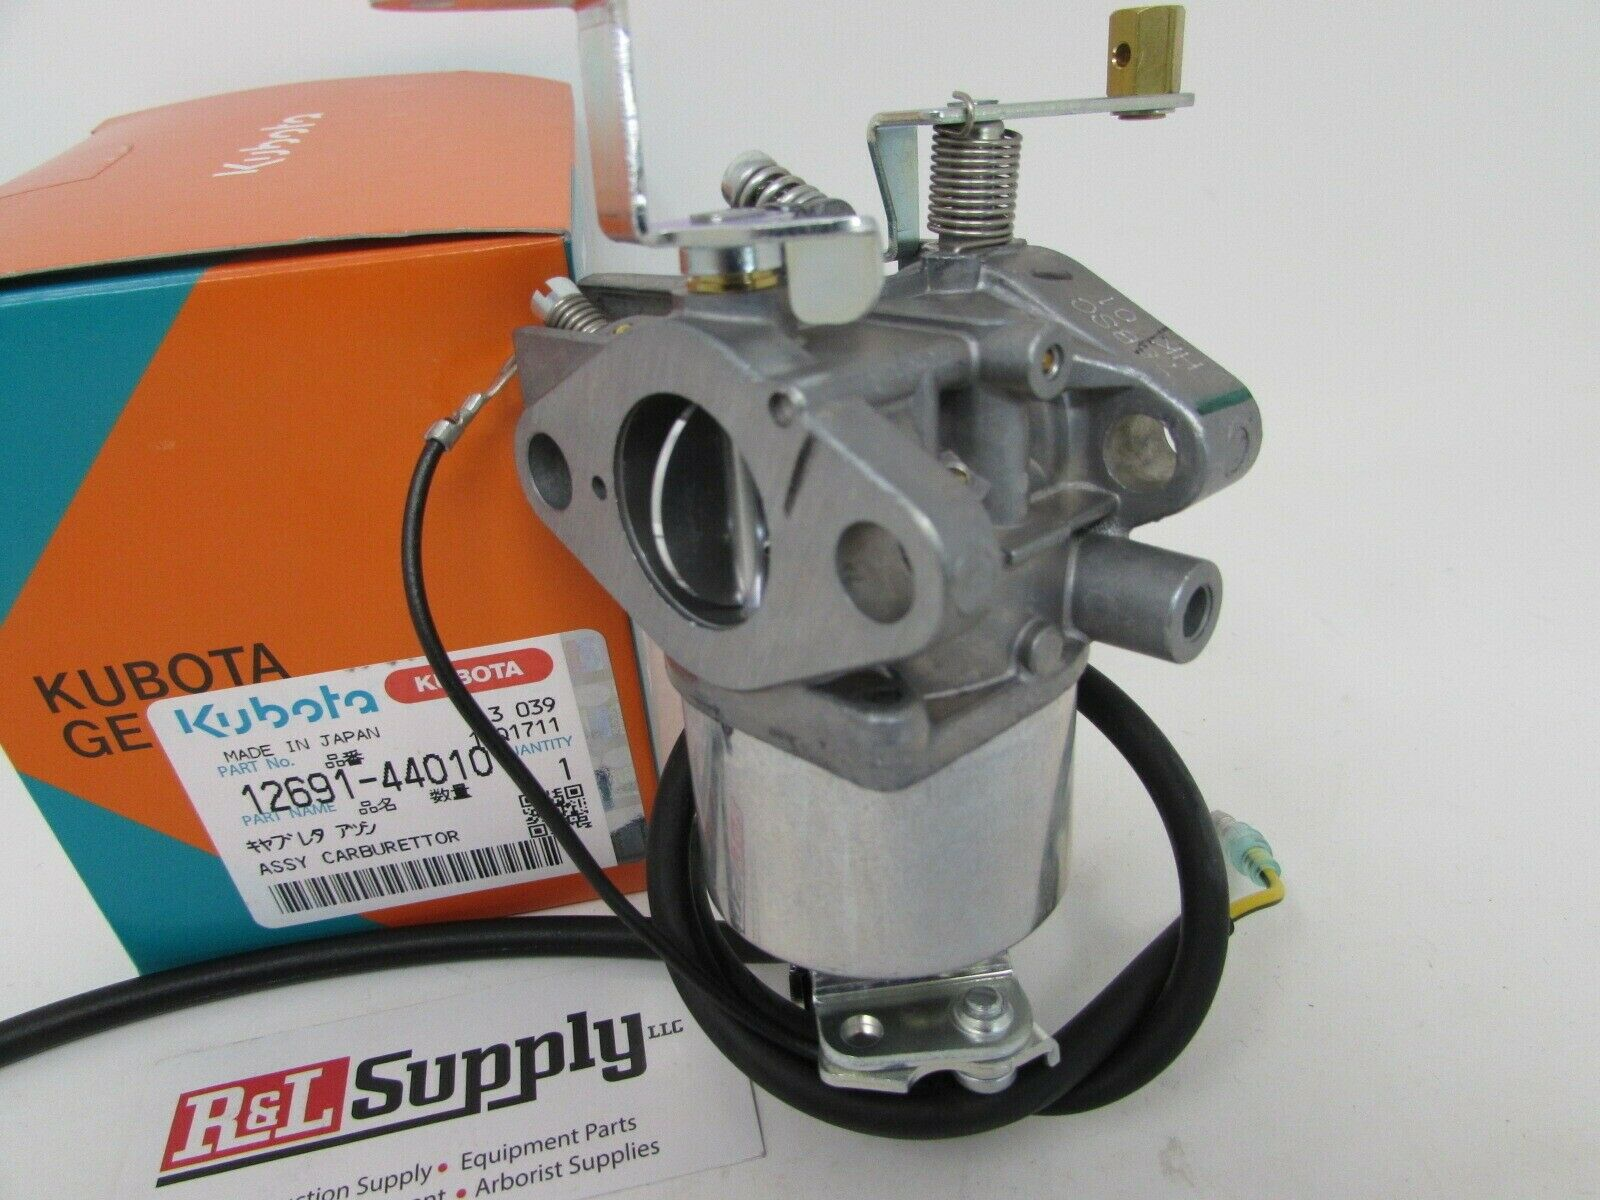 Carburetor Section Parts Diagram And Parts List For Kubota Riding